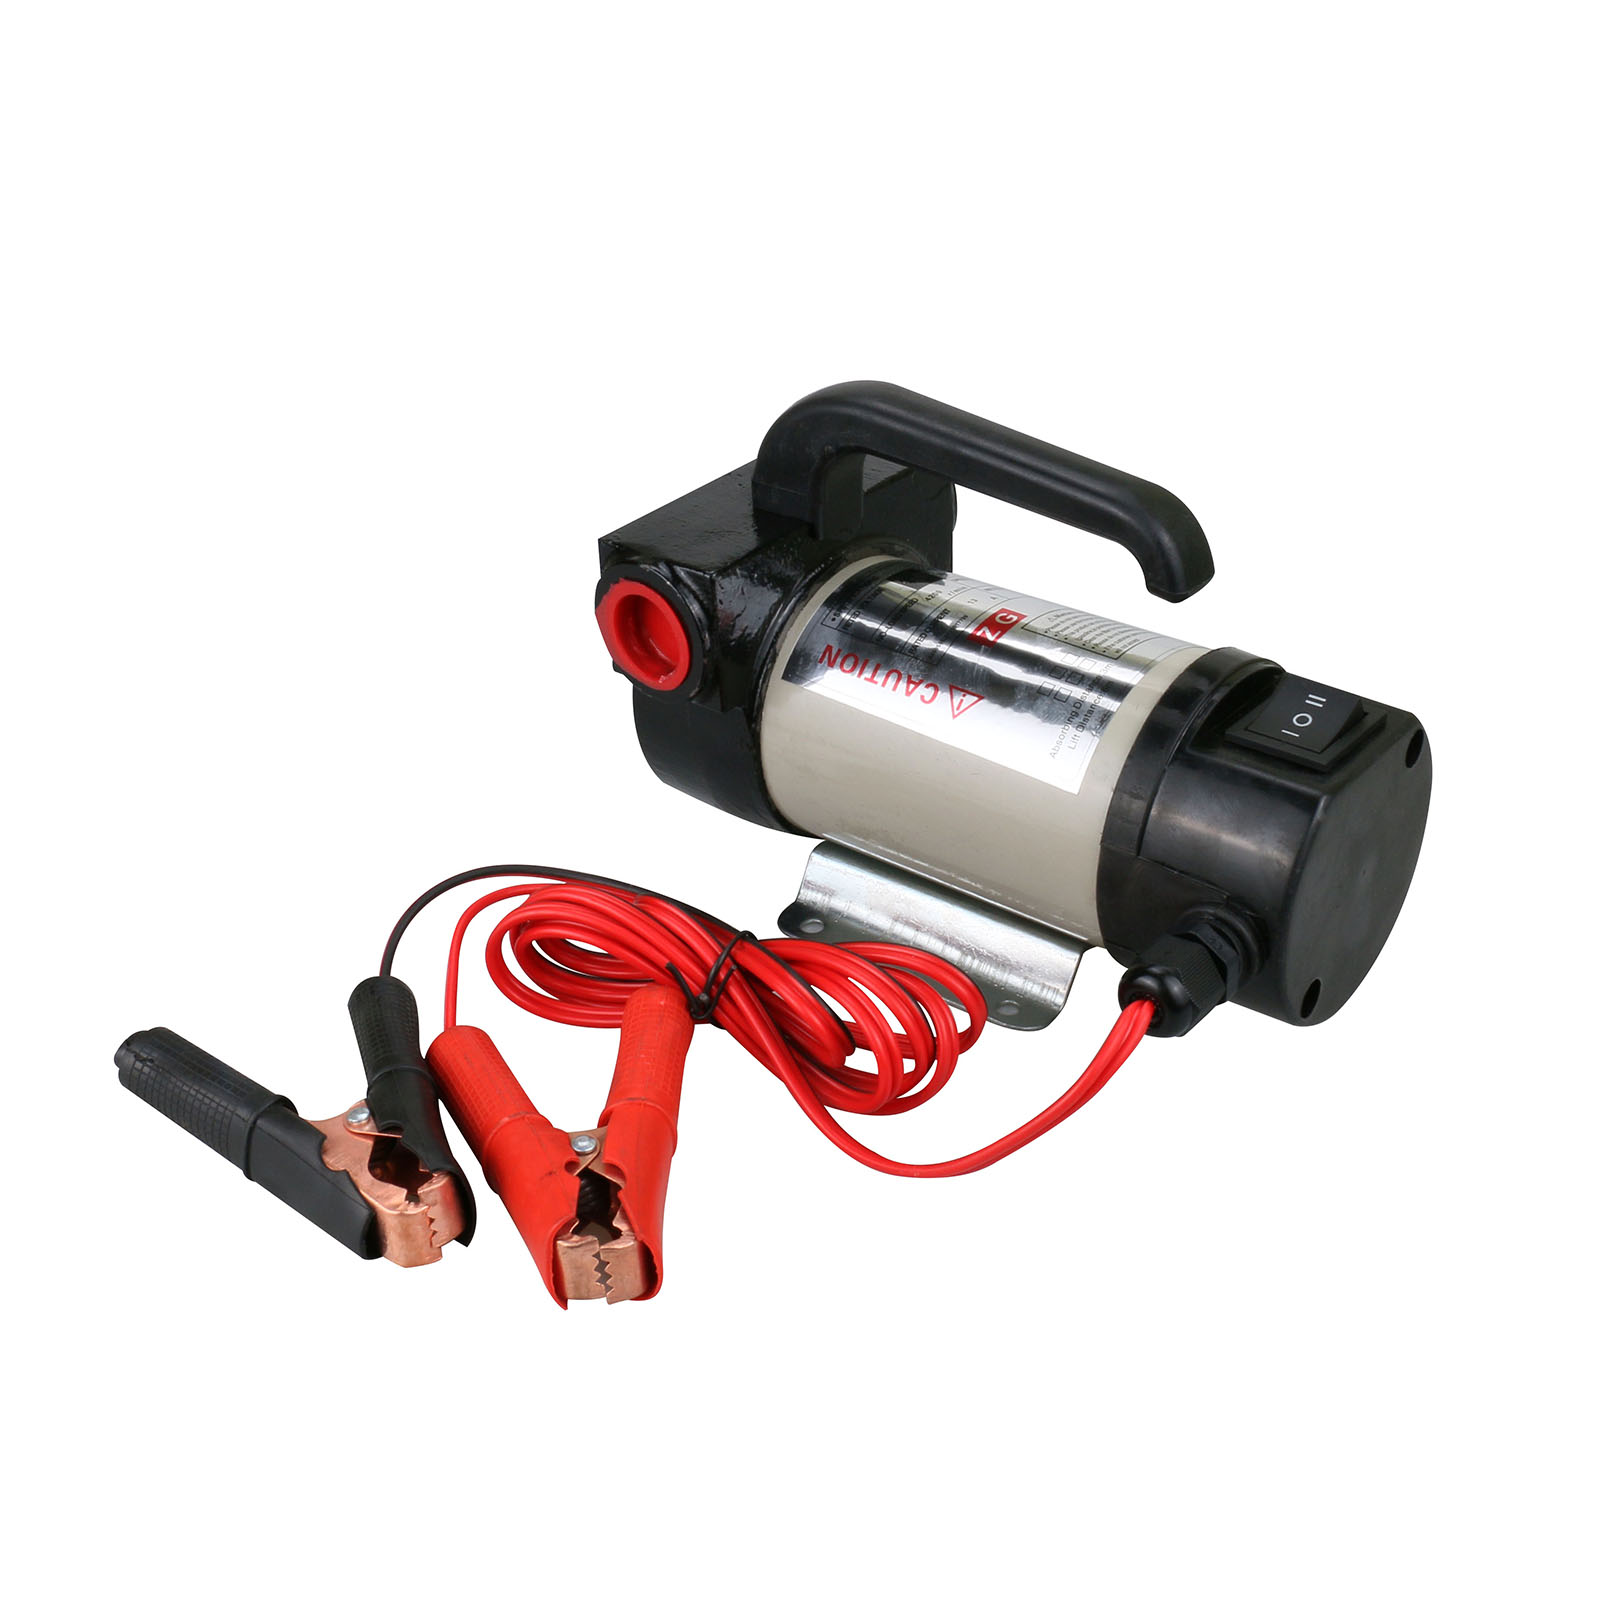 diesel pump Diesel Oil Fuel Transfer Pump Electric Tool Car Direct Current Pump Kit Alligator Clip 50L/min 12V DC For Auto 50l min ac dc electric automatic fuel transfer pump for pumping oil diesel kerosene water small auto refueling pump